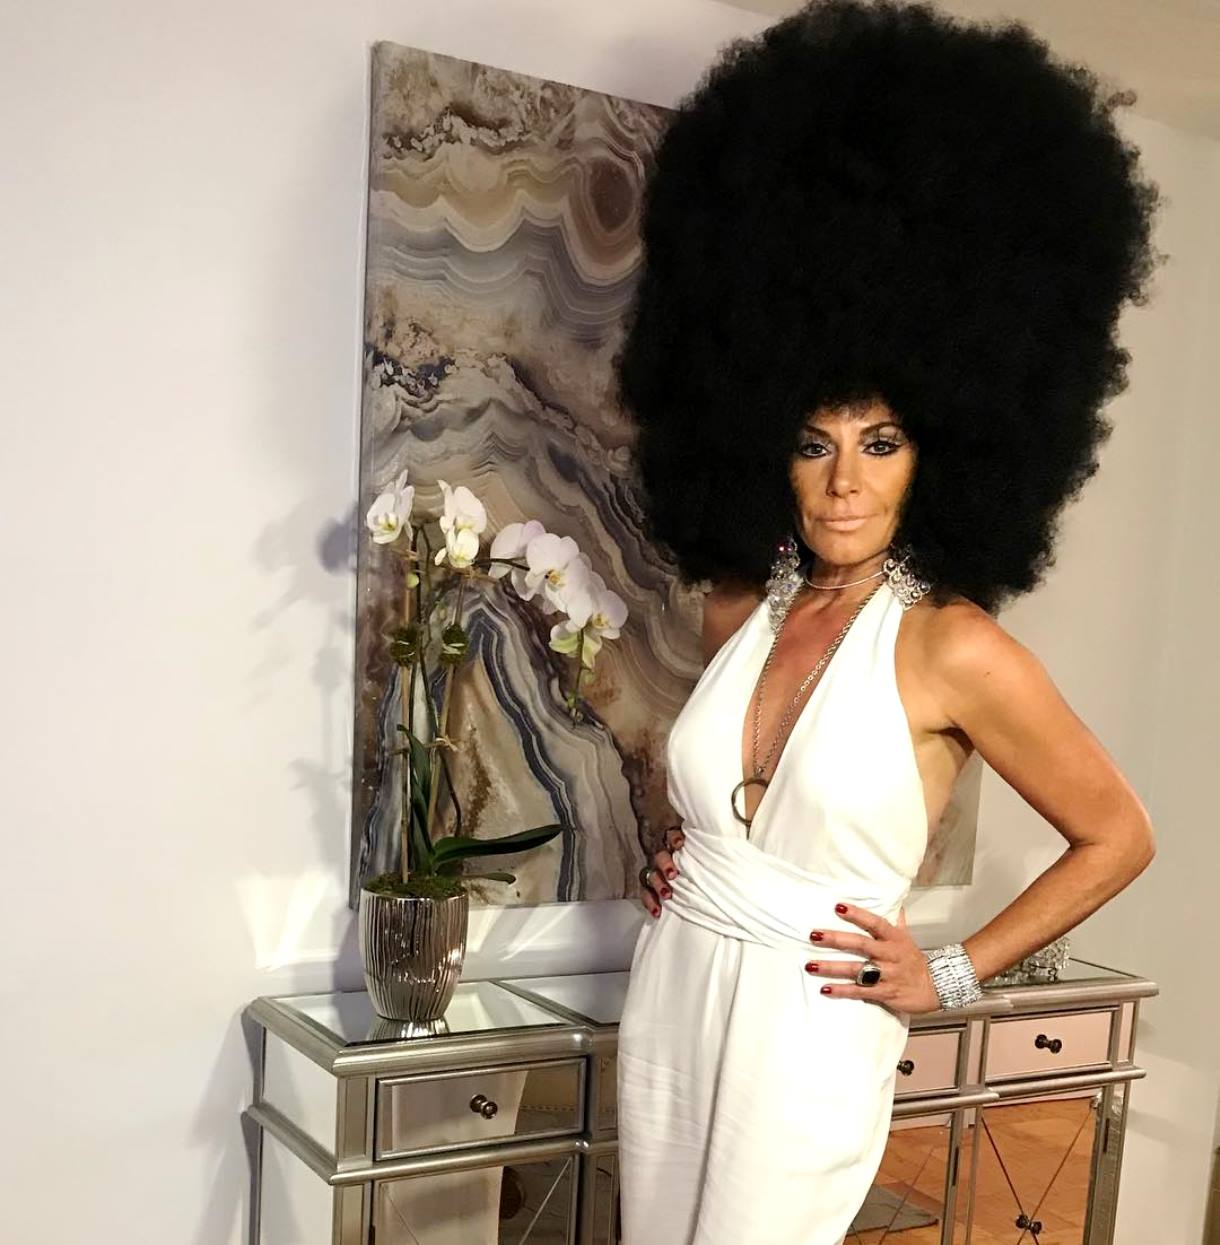 luann de lesseps diana ross costume black face accusations